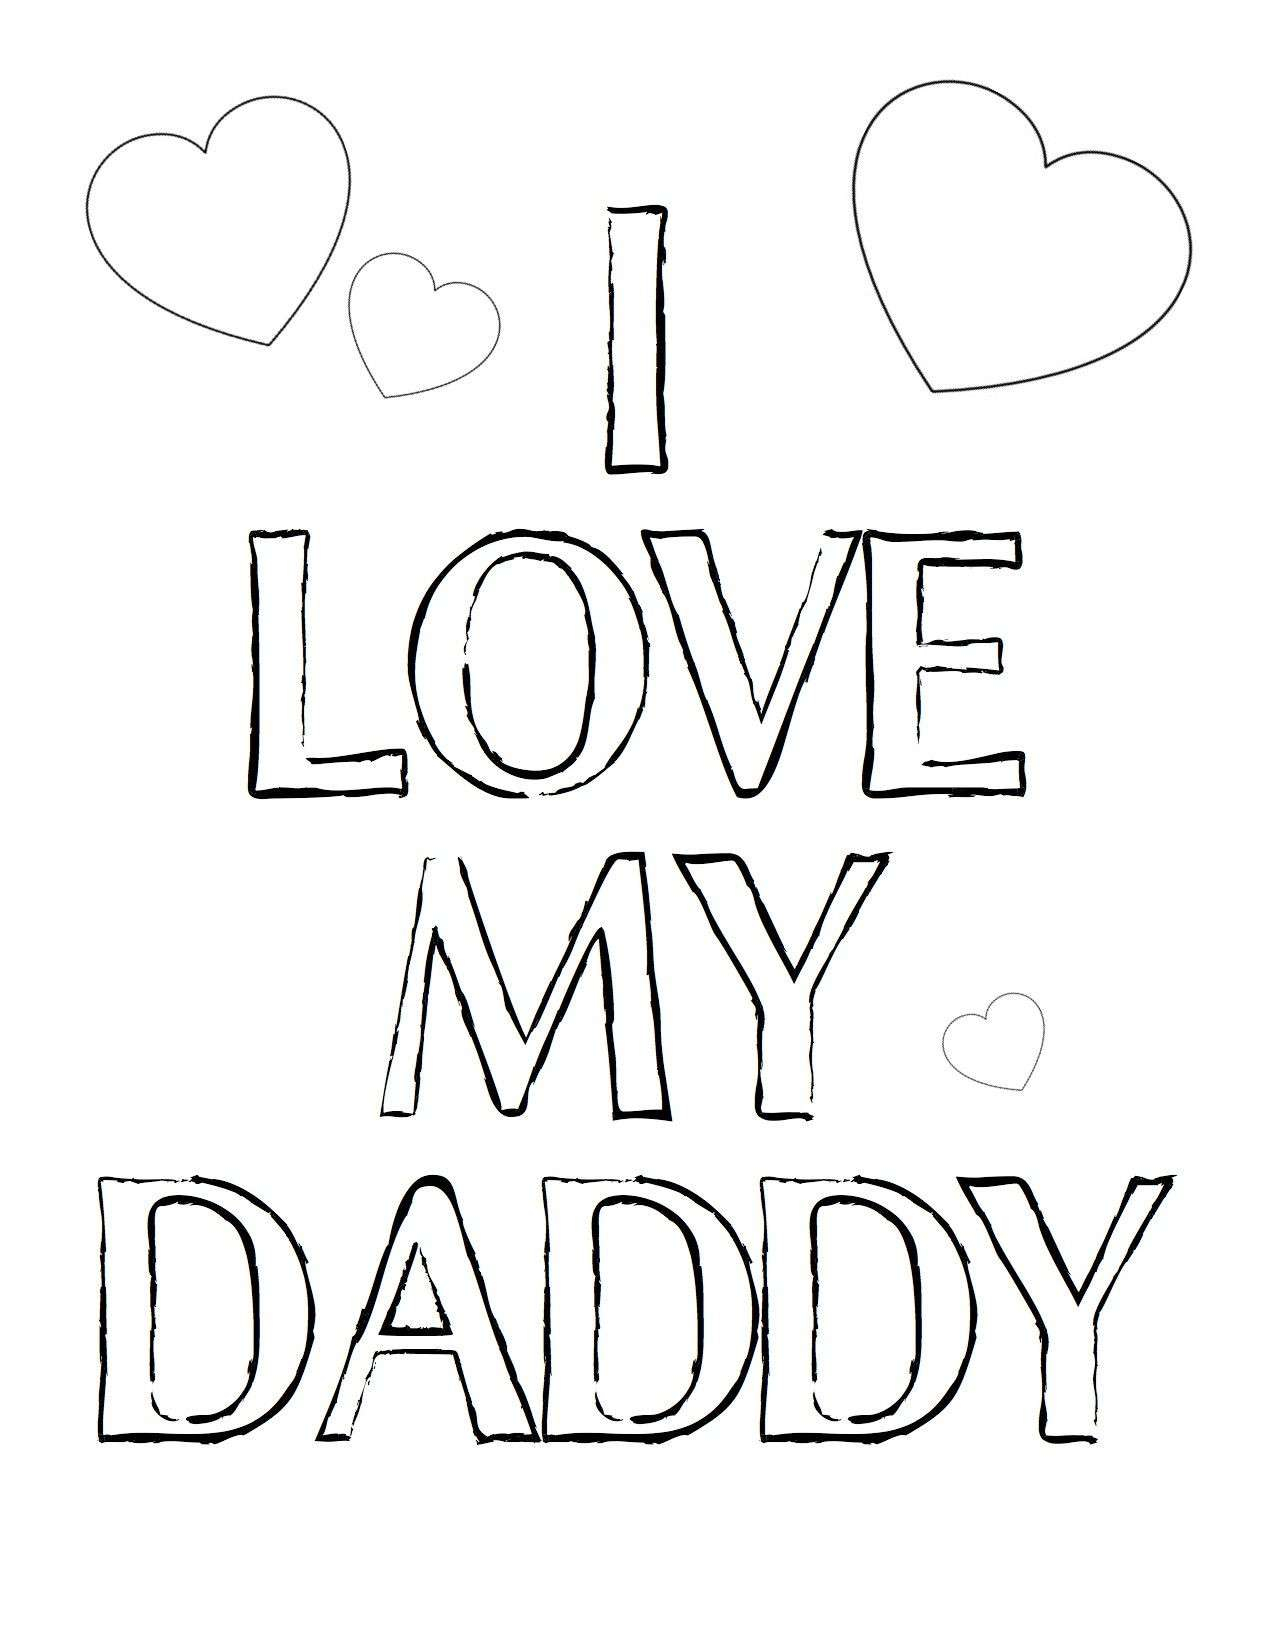 I Love My Daddy Coloring Pages  to Print 5j - Save it to your computer